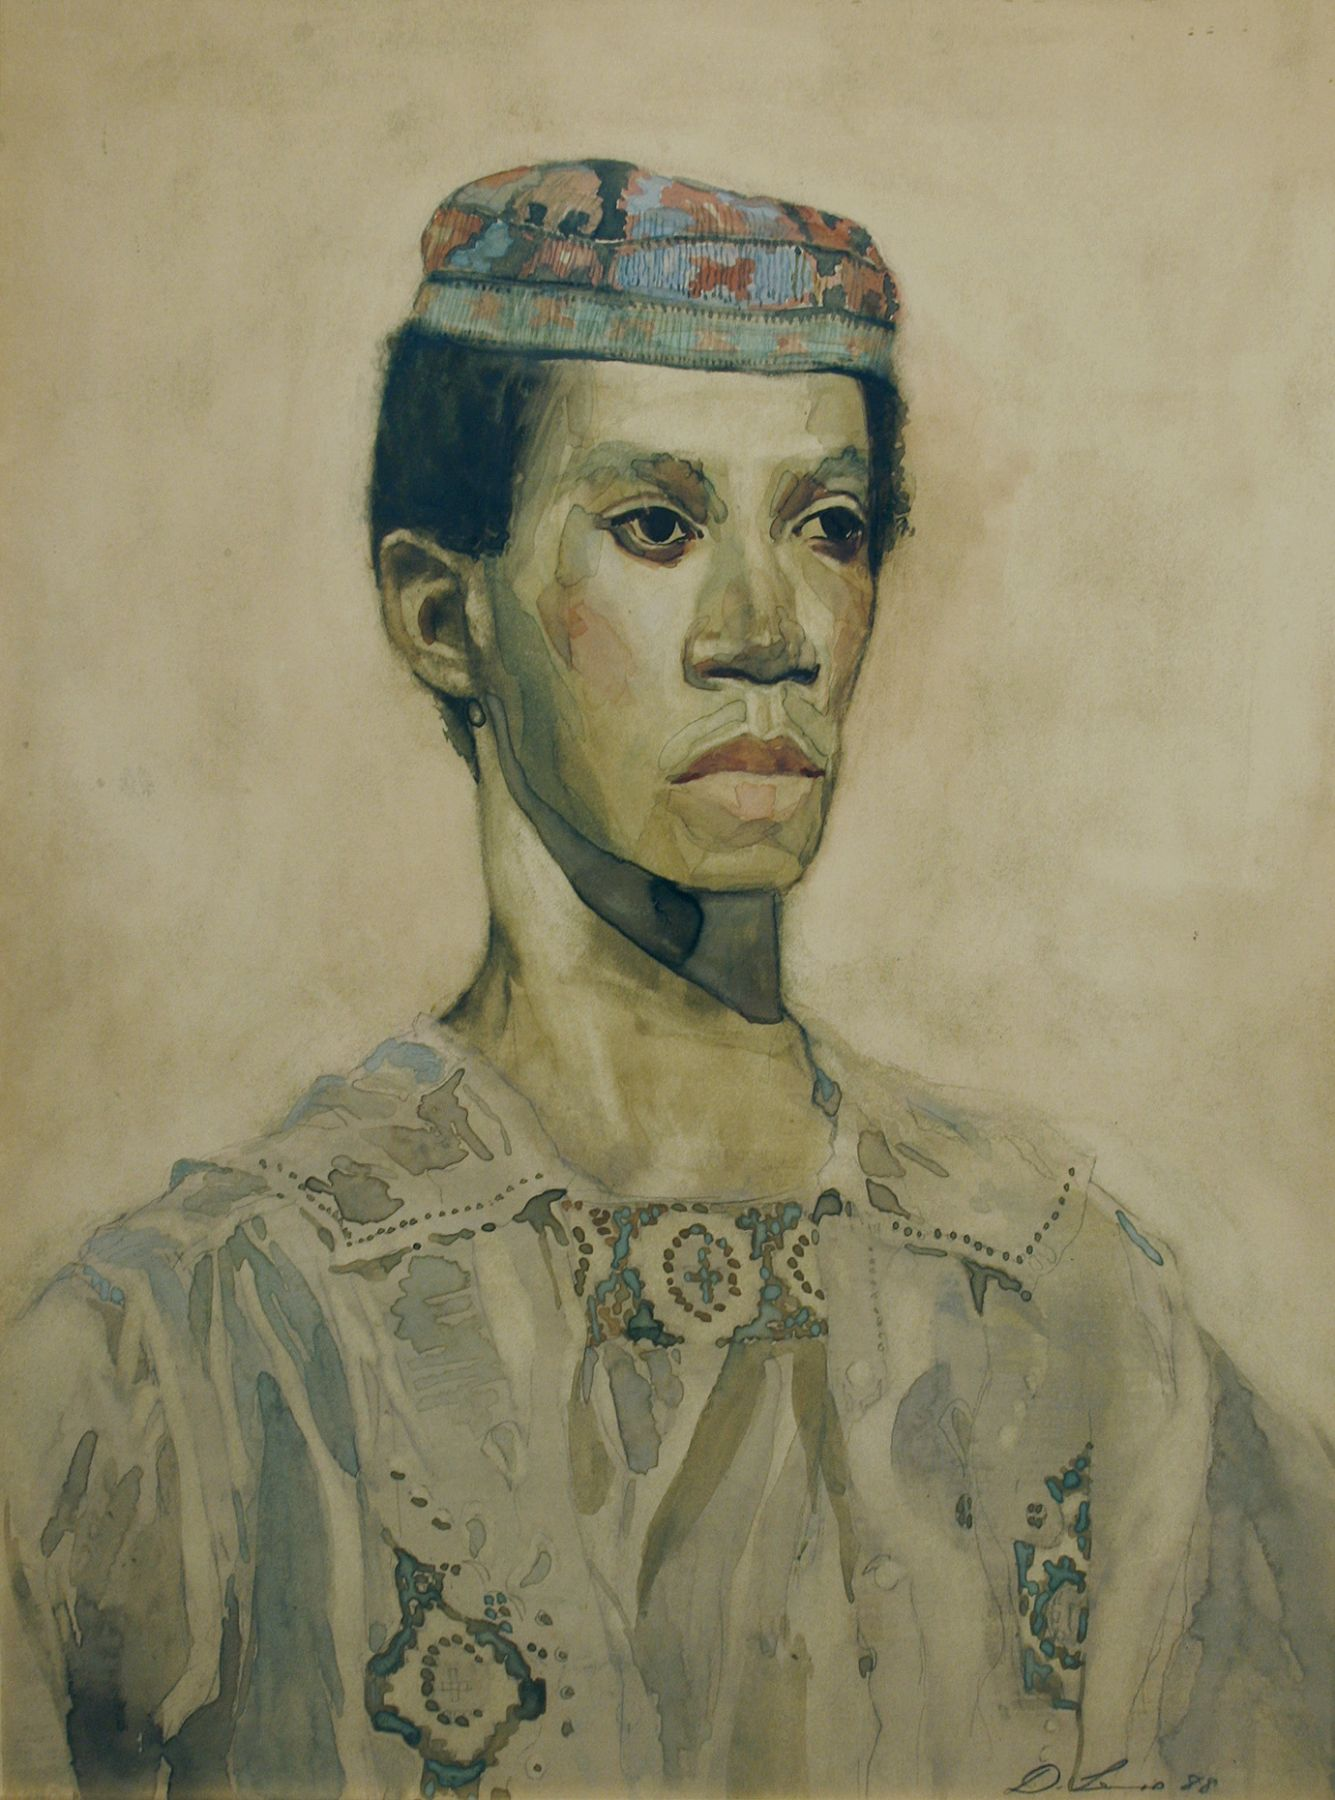 David Levine, Afro-American, 1988, watercolor on paper, 17 1/2 x 14 5/8 inches